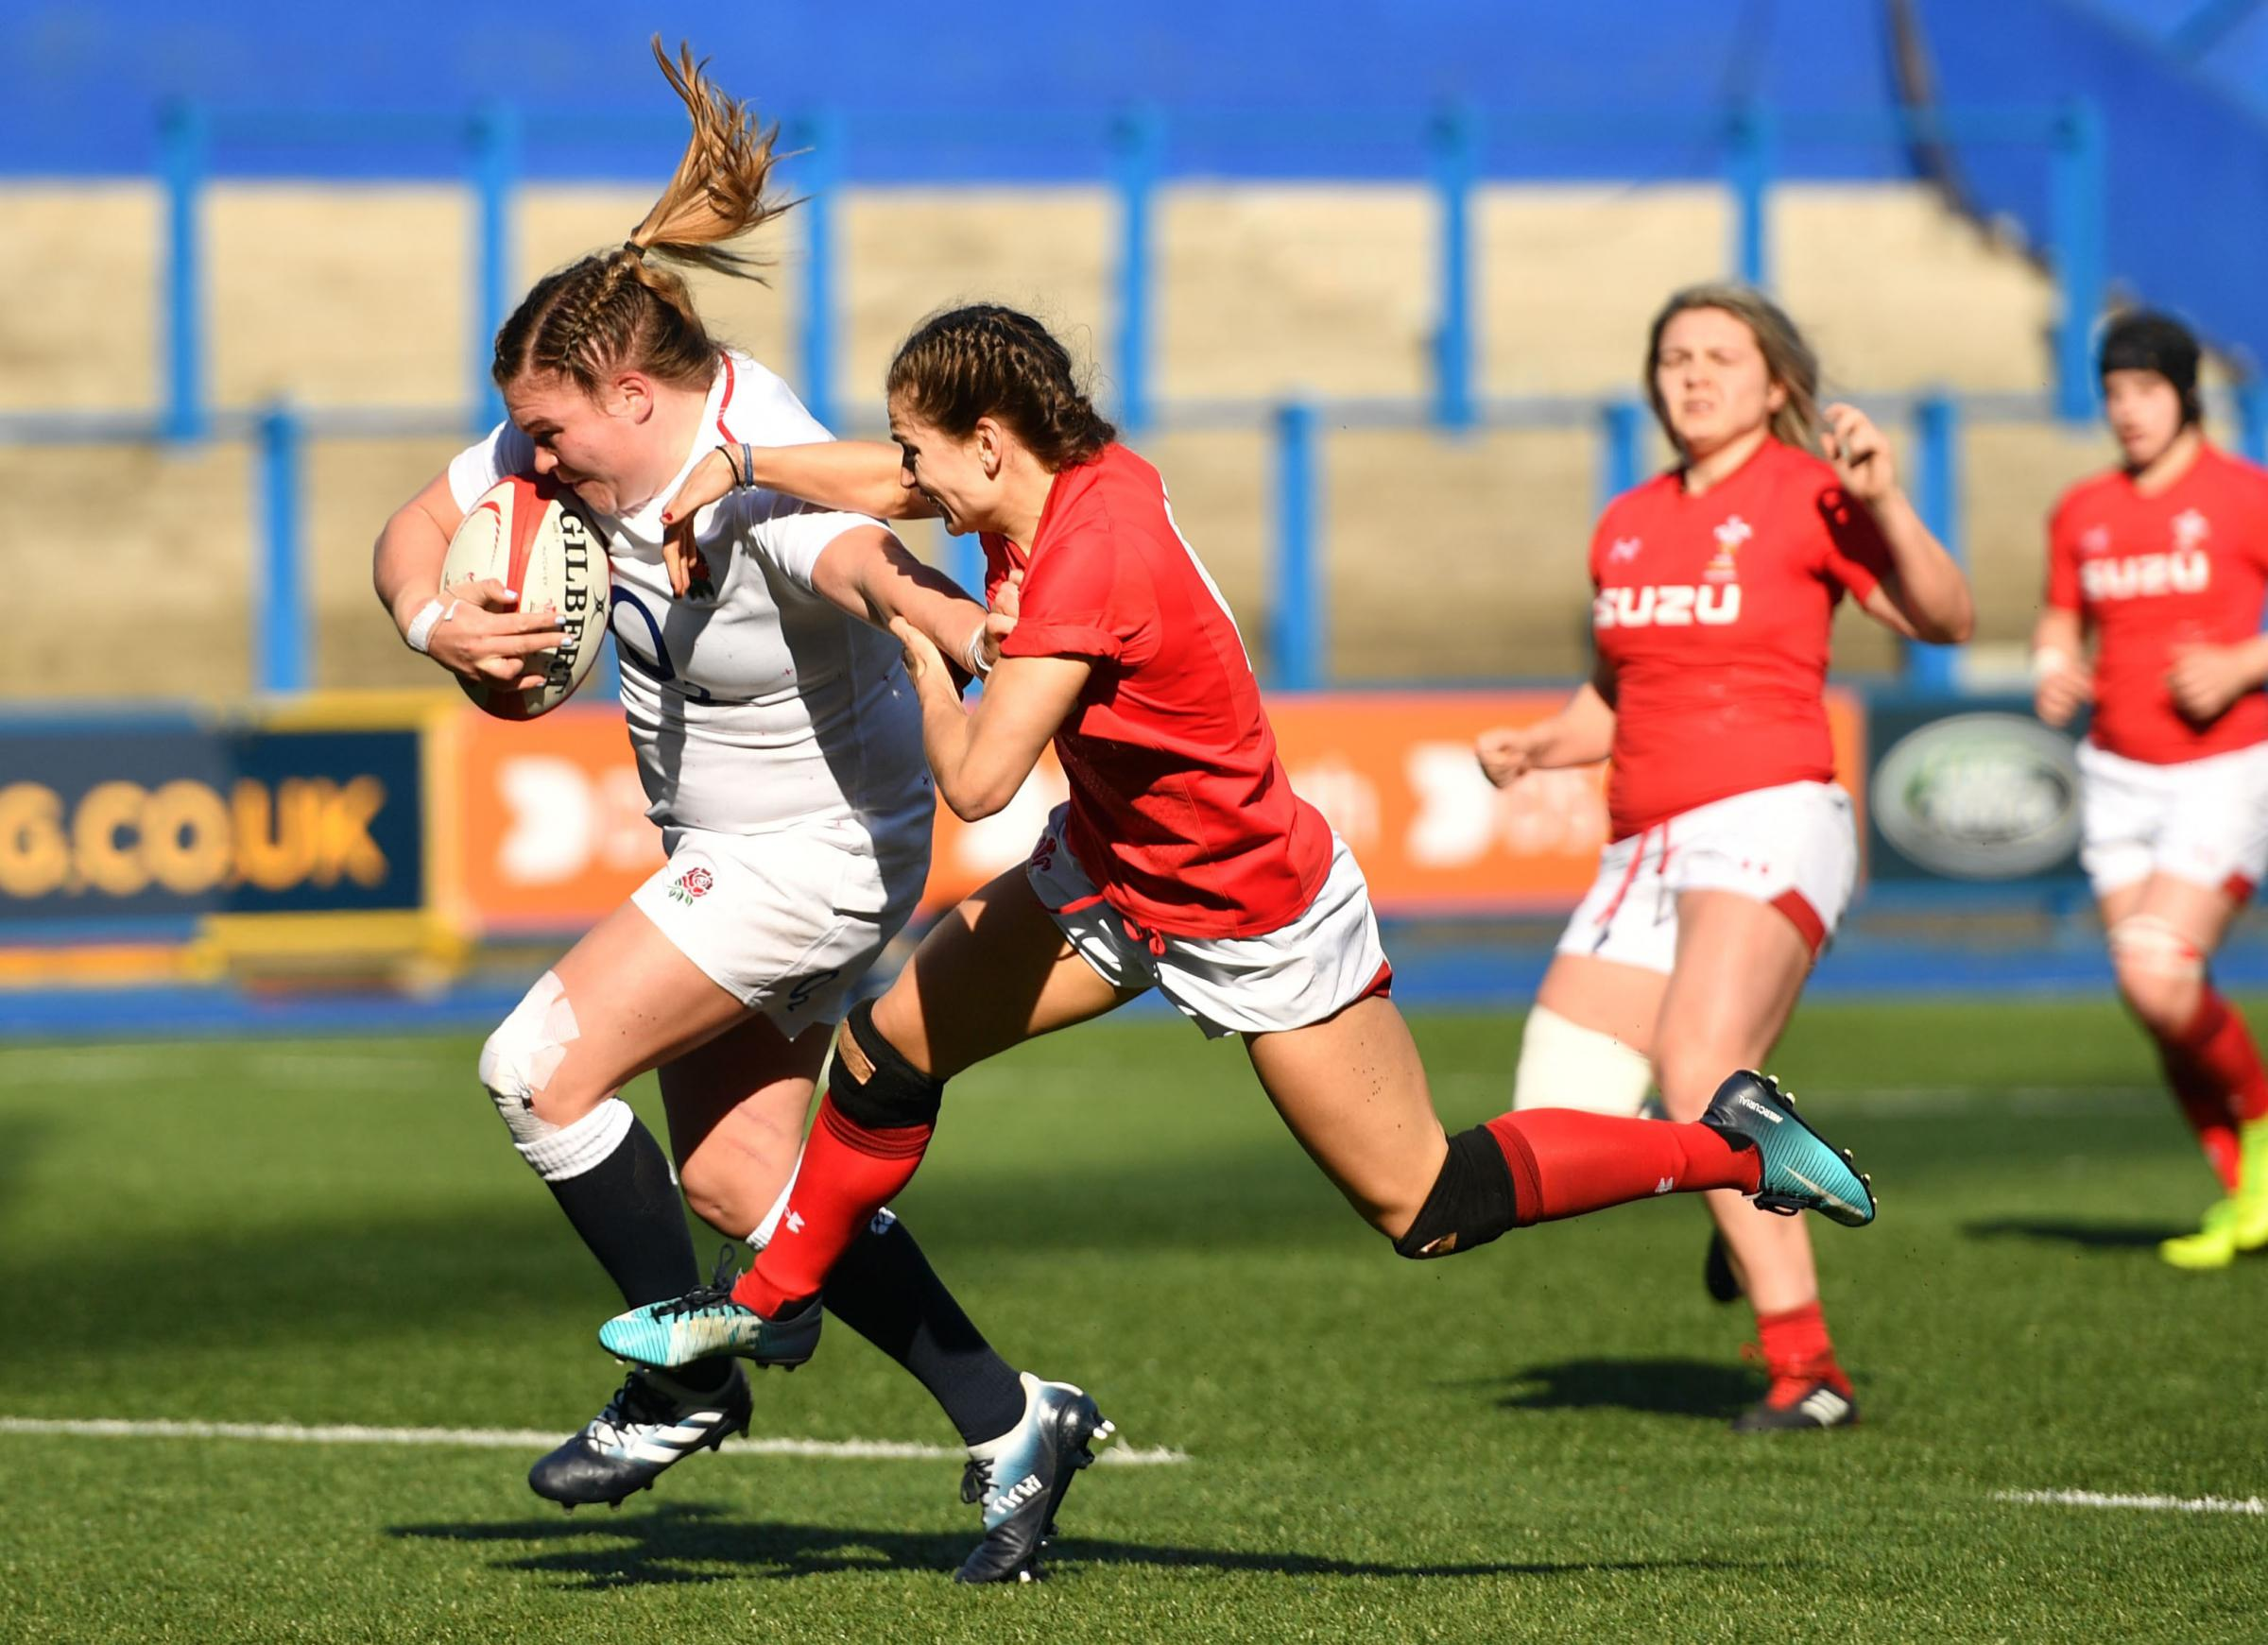 England's Sarah Bern (left) and Wales' Jasmine Joyce during the Guinness Women's Six Nations match at Cardiff Arms Park, Cardiff. PRESS ASSOCIATION Photo. Picture date: Sunday February 24, 2019. See PA story RUGBYU Wales Women. Photo credit s